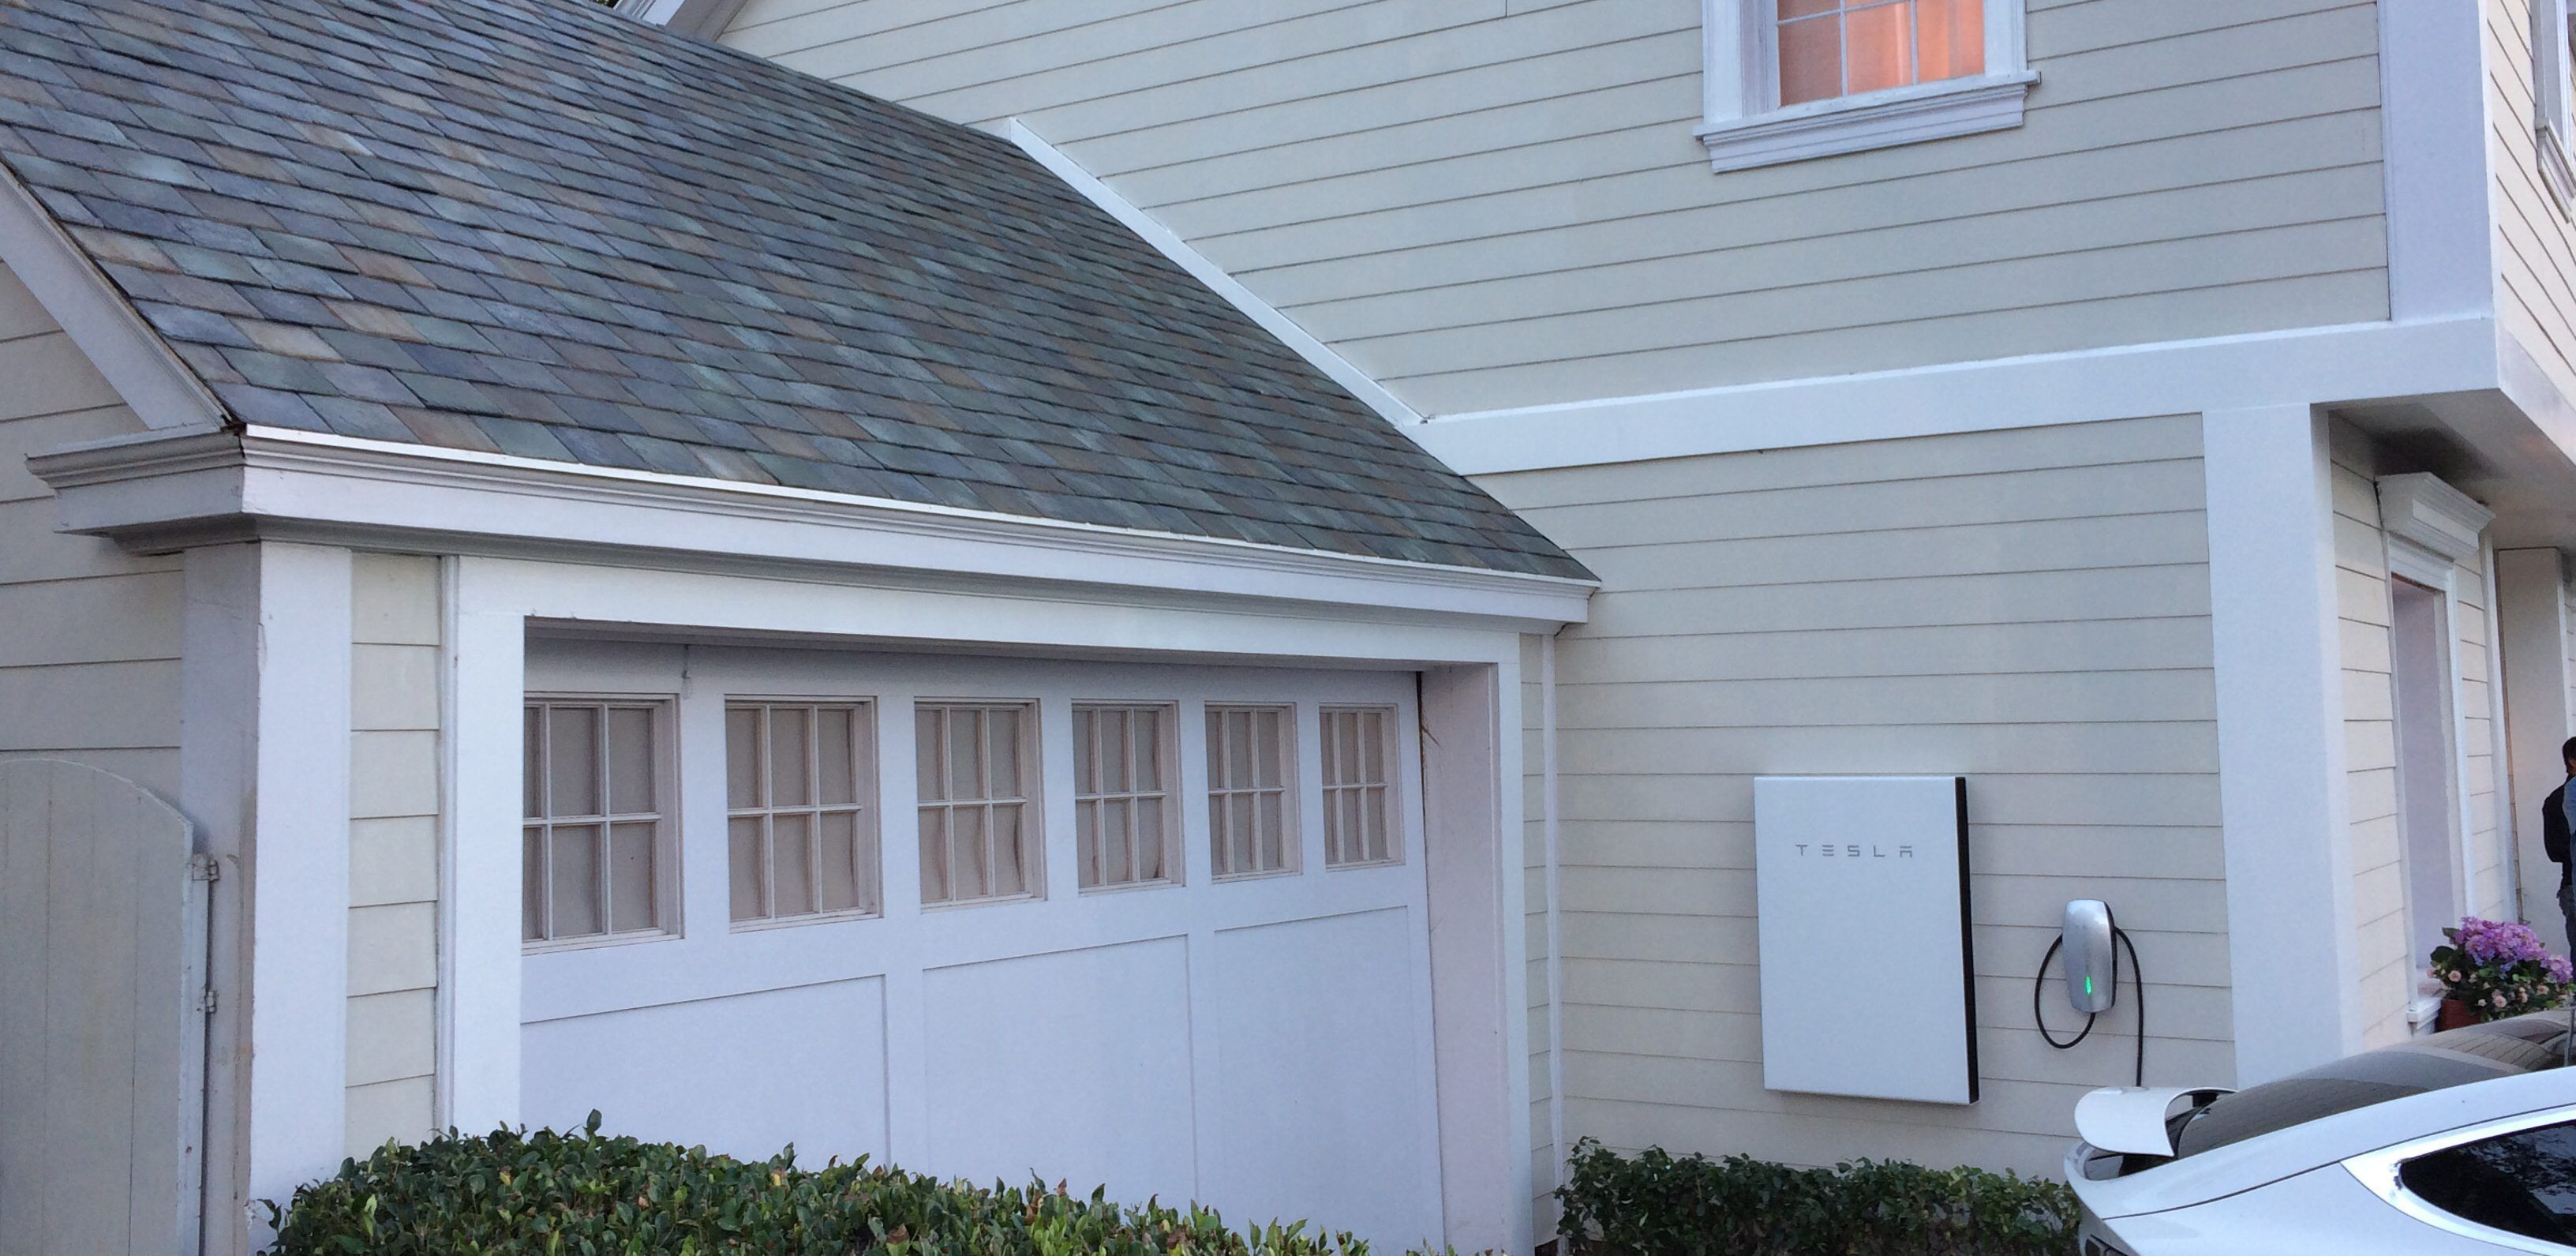 Tesla Powerwall 2 Is A Game Changer In Home Energy Storage 14 Kwh W Inverter For 5 500 With Images Powerwall Tesla Powerwall Solar Roof